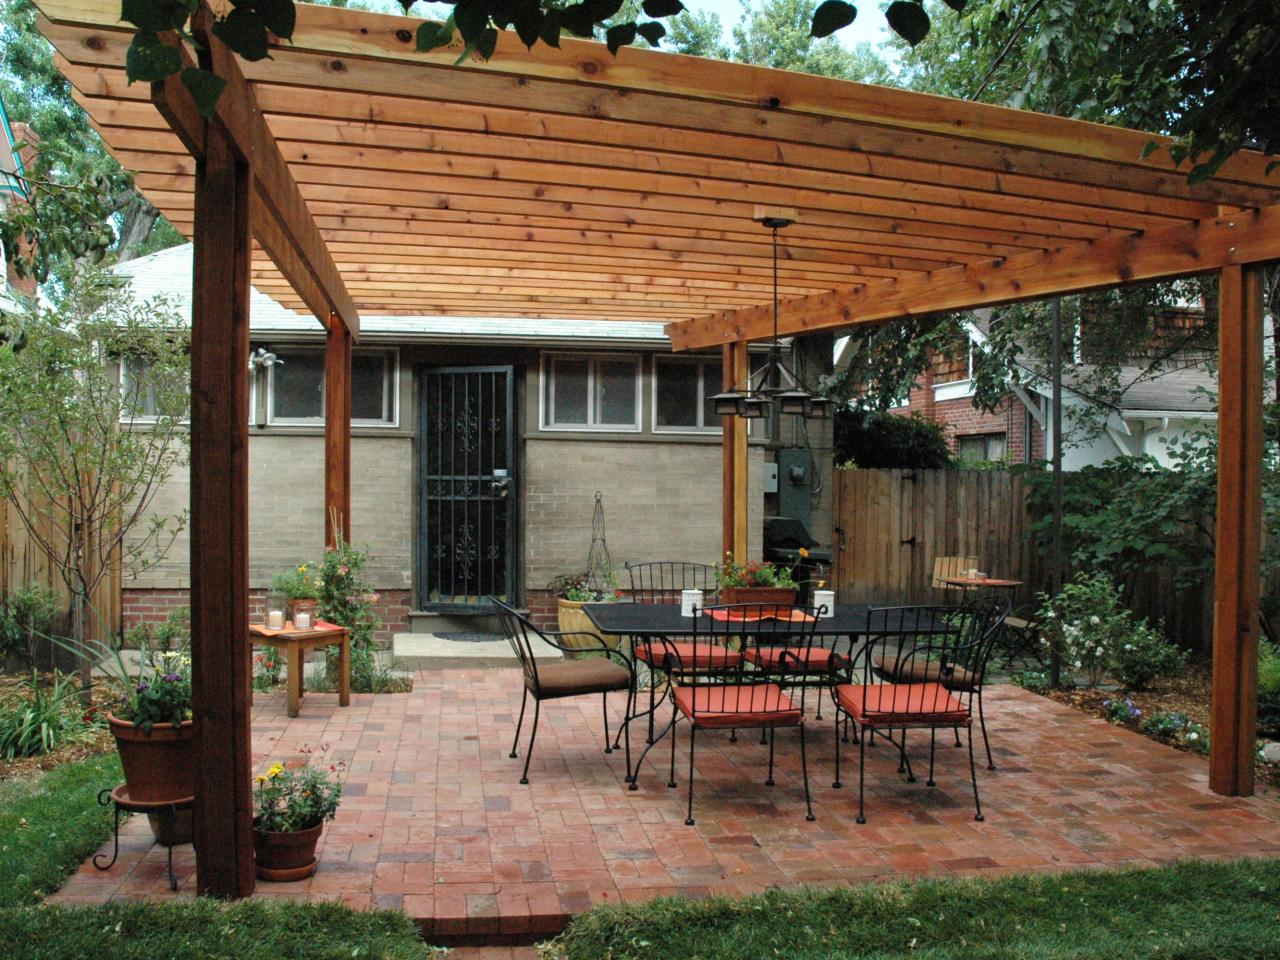 Arbor & Patio Cover Design & Installation-Fort Worth TX Professional Landscapers & Outdoor Living Designs-We offer Landscape Design, Outdoor Patios & Pergolas, Outdoor Living Spaces, Stonescapes, Residential & Commercial Landscaping, Irrigation Installation & Repairs, Drainage Systems, Landscape Lighting, Outdoor Living Spaces, Tree Service, Lawn Service, and more.